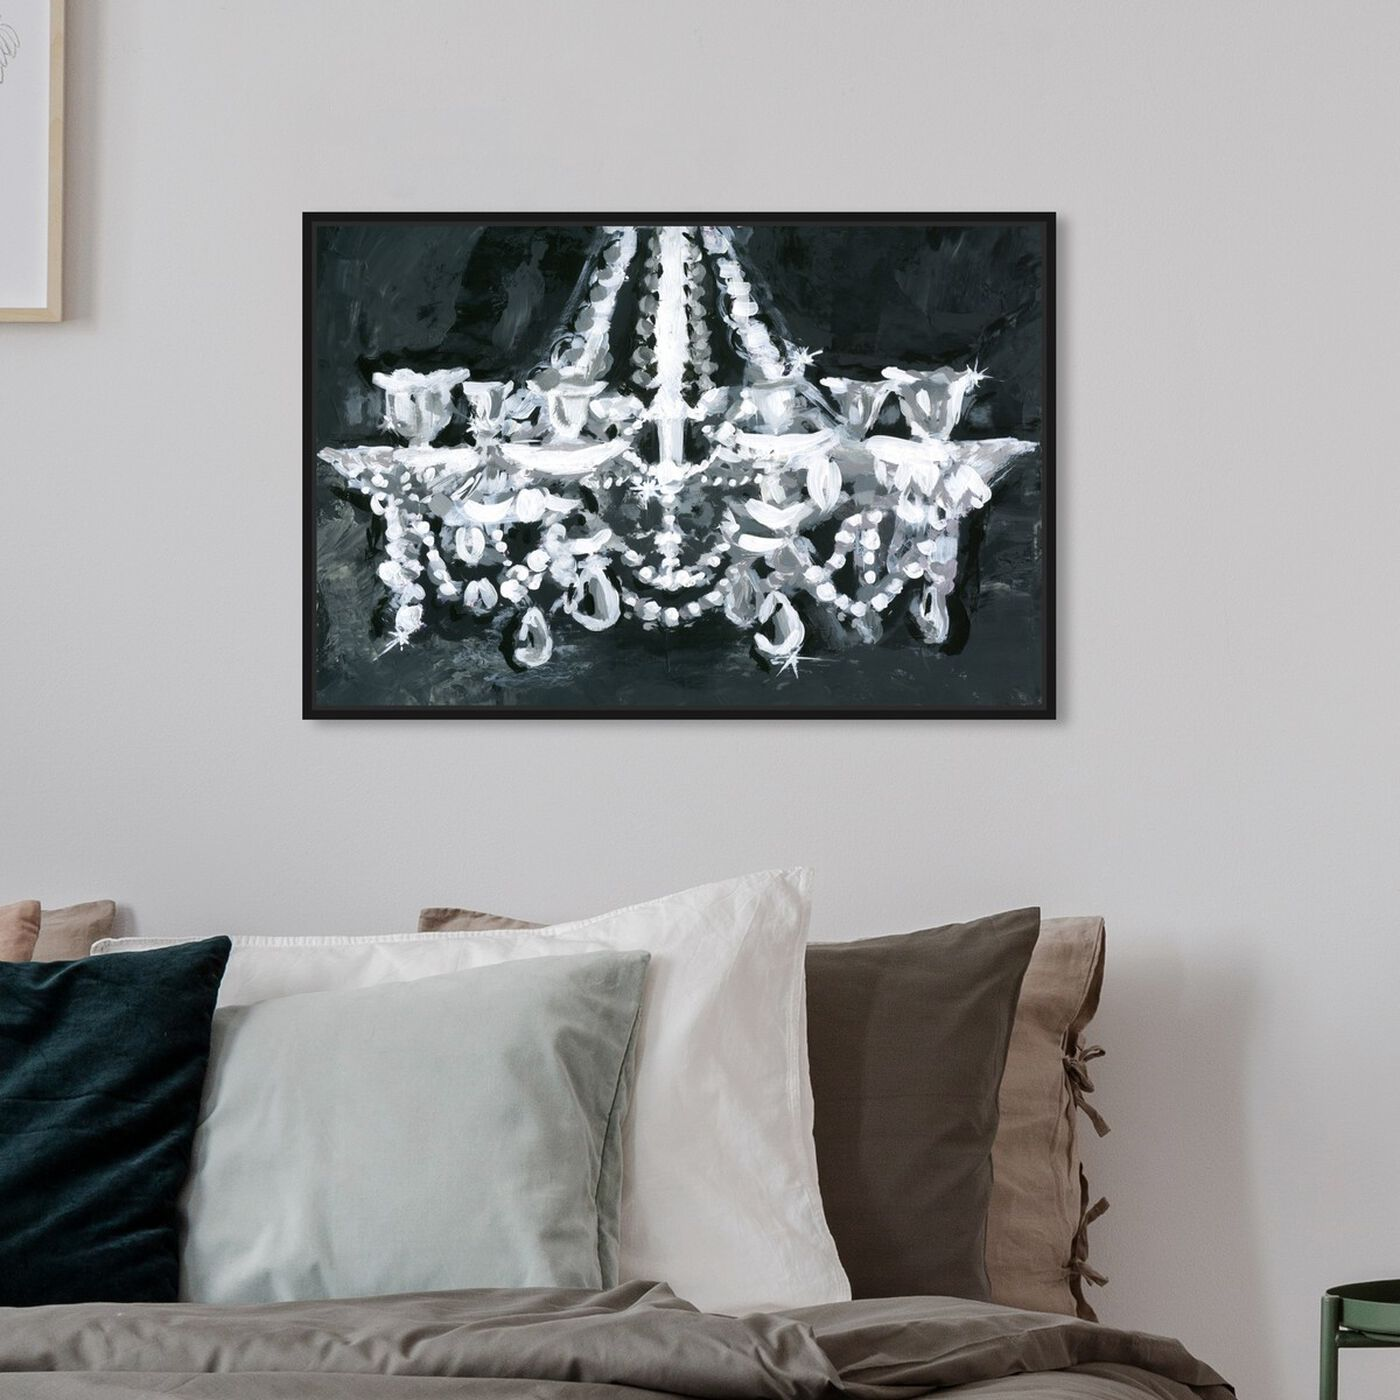 Hanging view of BW Candelabro featuring fashion and glam and chandeliers art.